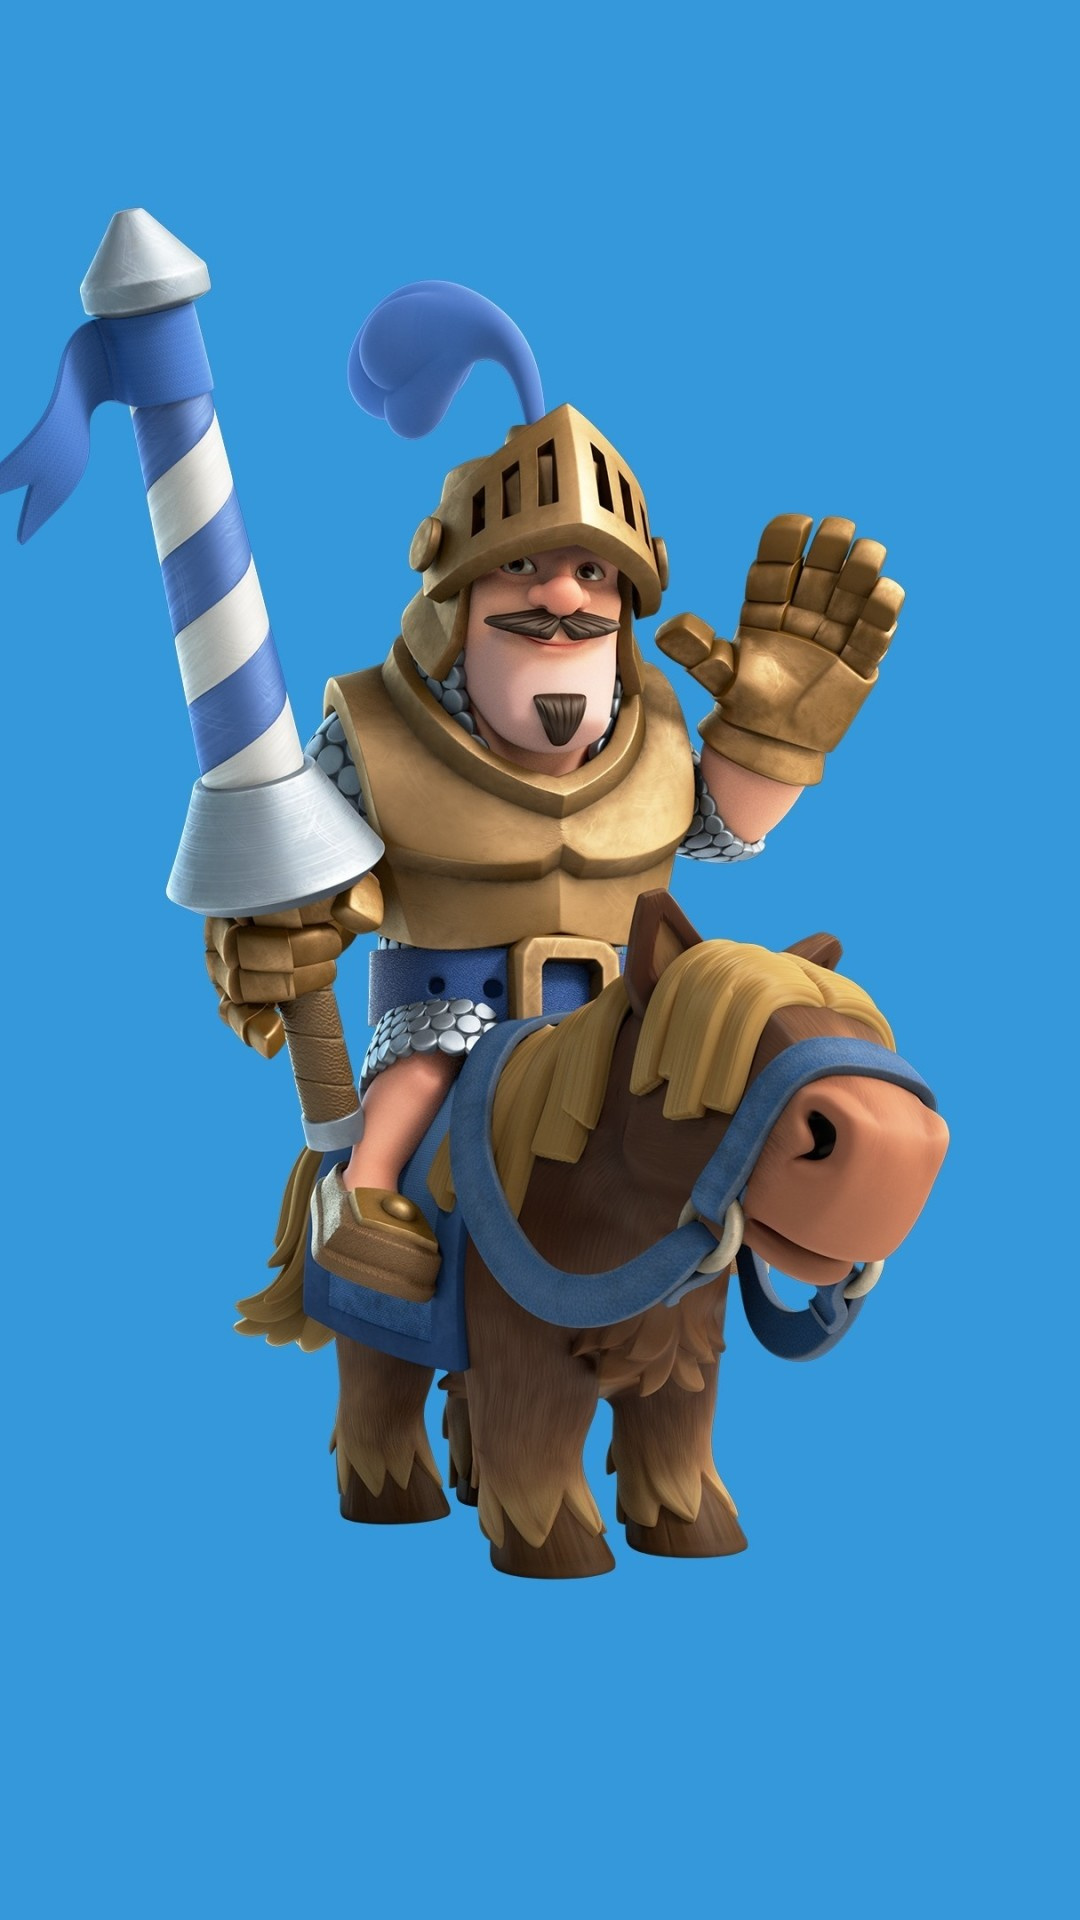 1080x1920 Video Game Clash Royale. Wallpaper 693835